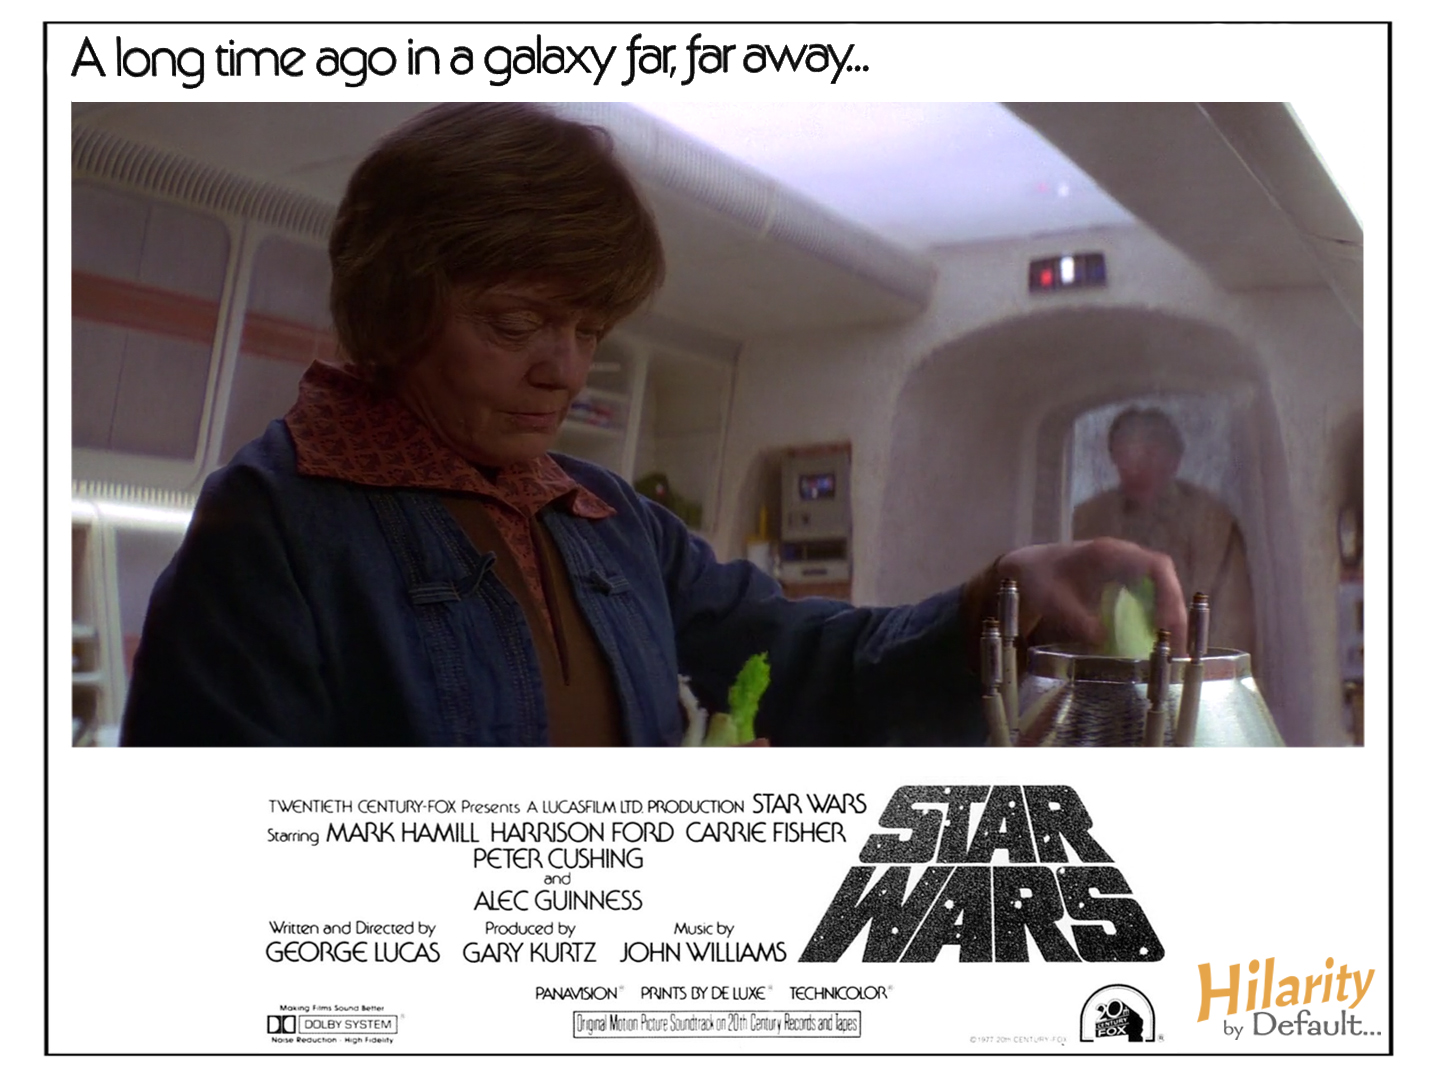 Out Of Context Posters 2 Star Wars Episode Iv A New Hope 1977 Hilarity By Default